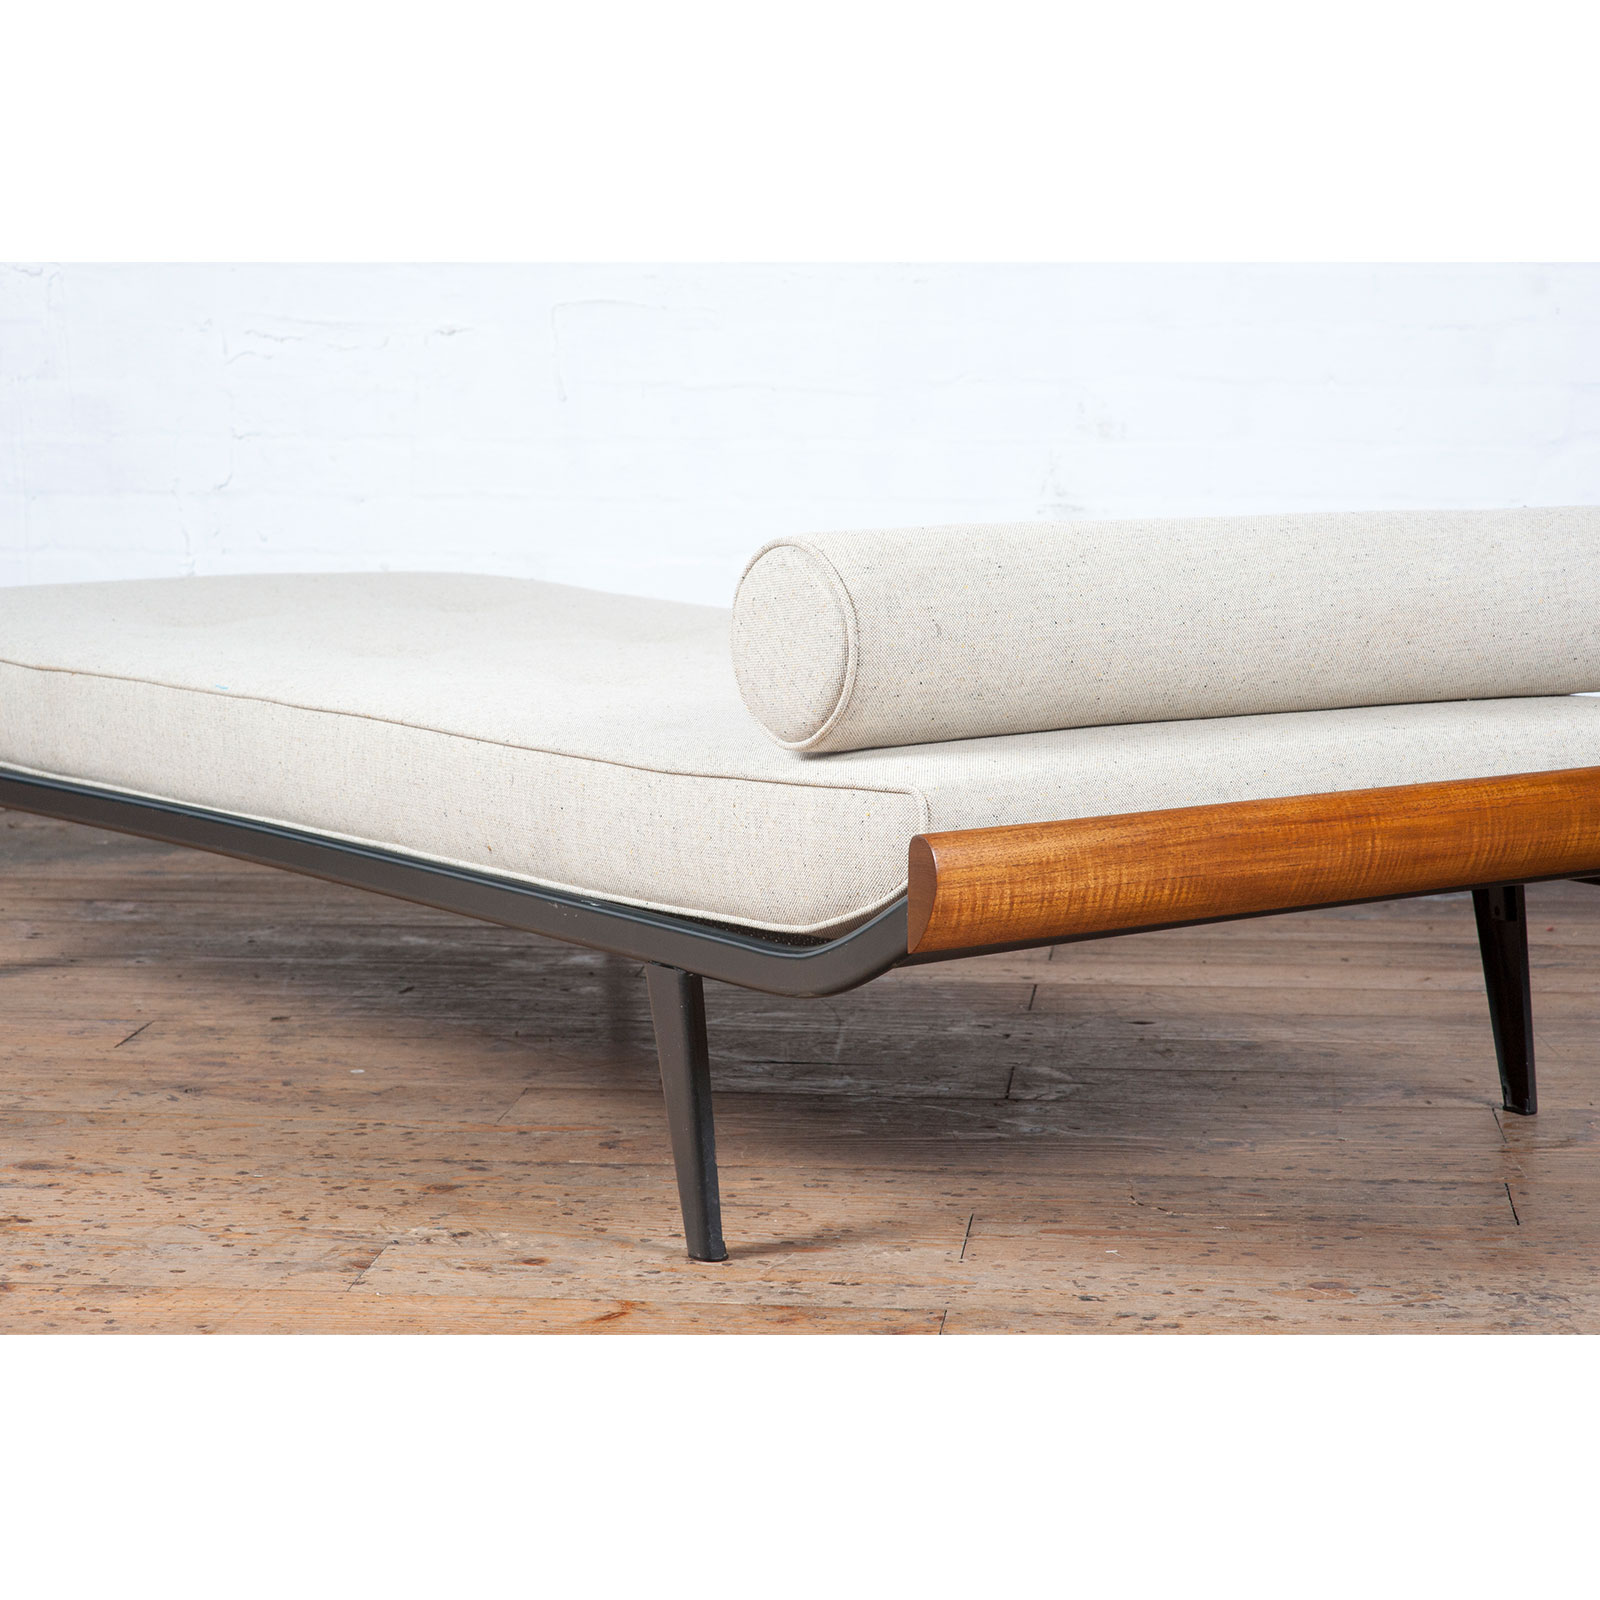 Cleopatra Daybed By Andre Cordemeyer For Auping With Gunmetal Frame, 1950s, The Netherlands 2